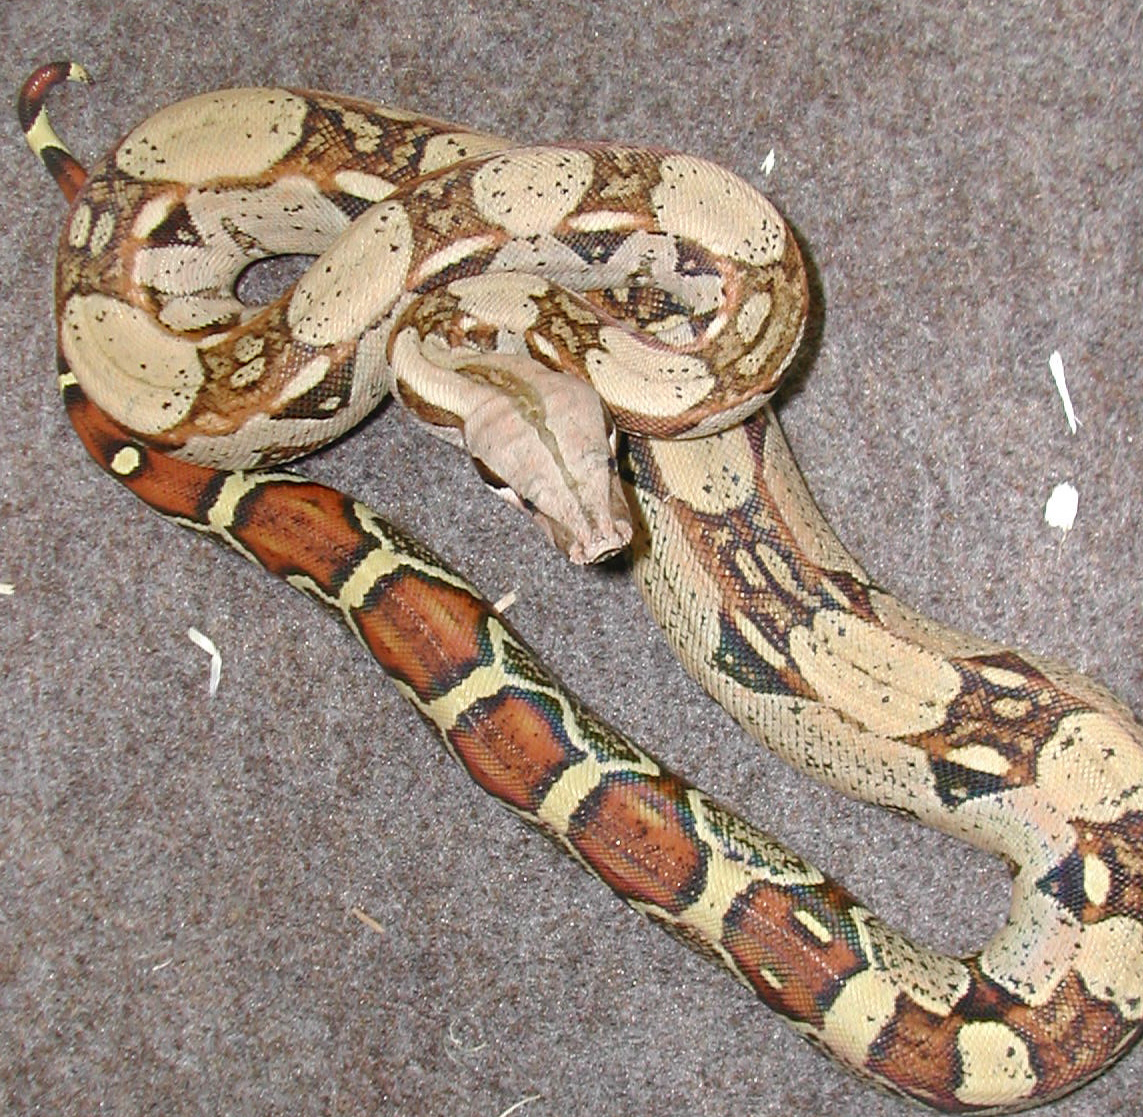 Care of your Ball Python